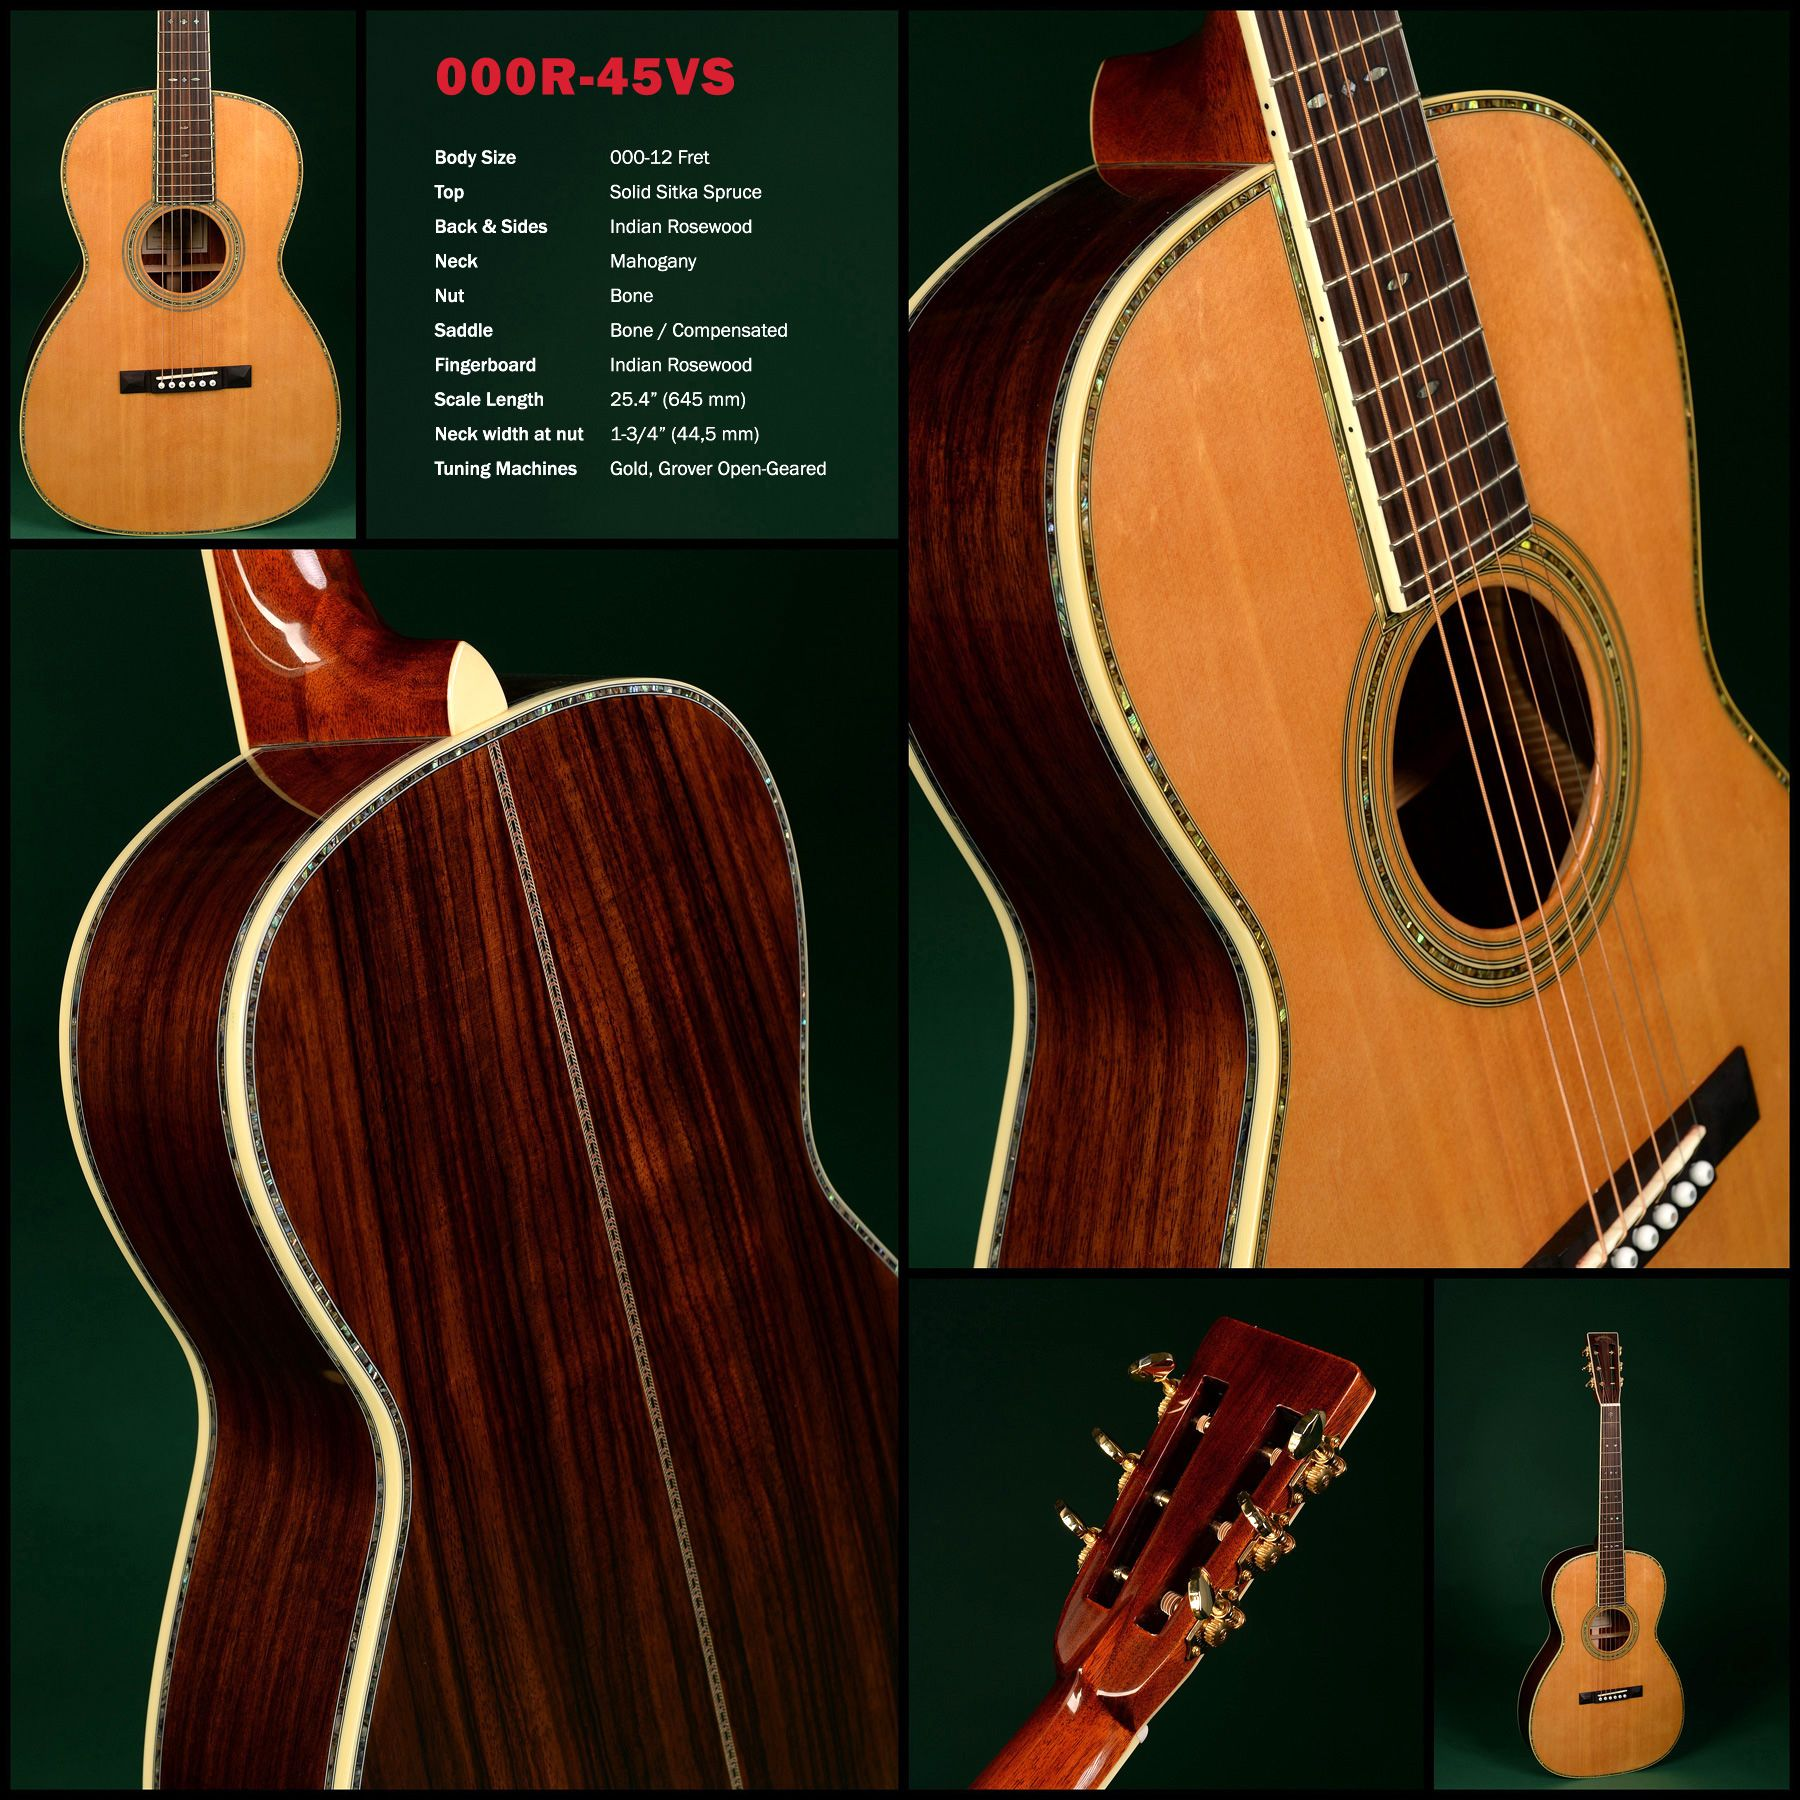 The Sigma Story Goes On 000r 45vs Guitar Martin Acoustic Guitar Acoustic Guitar